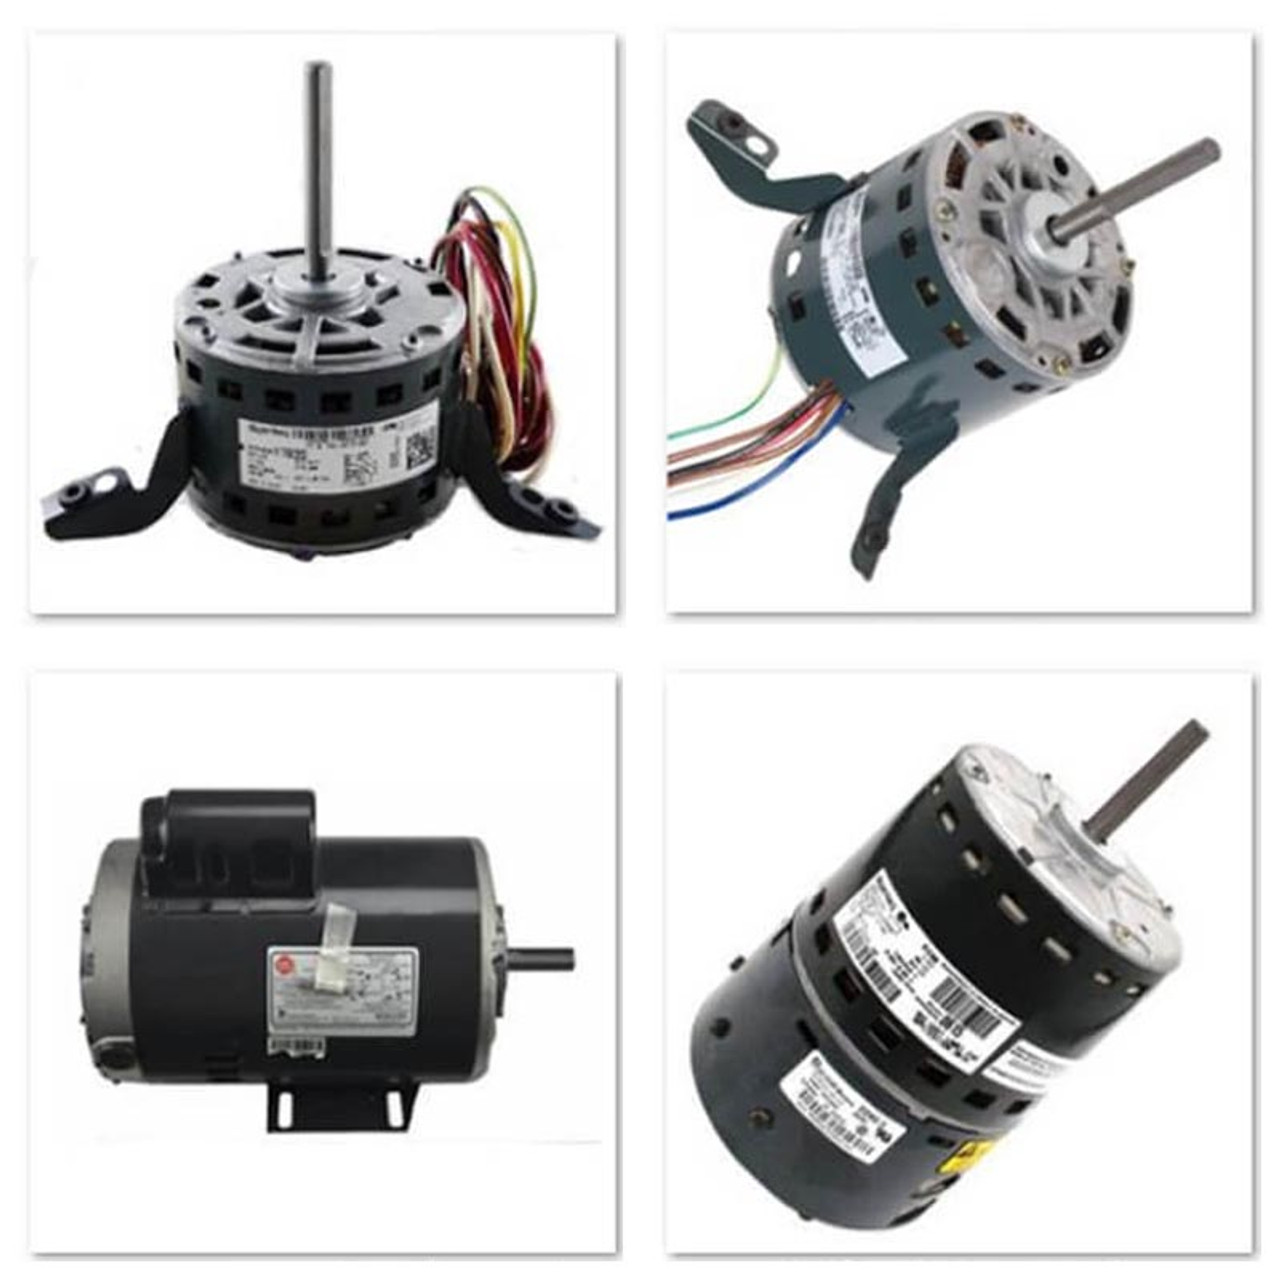 51-102172-01 - Variable Speed Blower Motor and Module